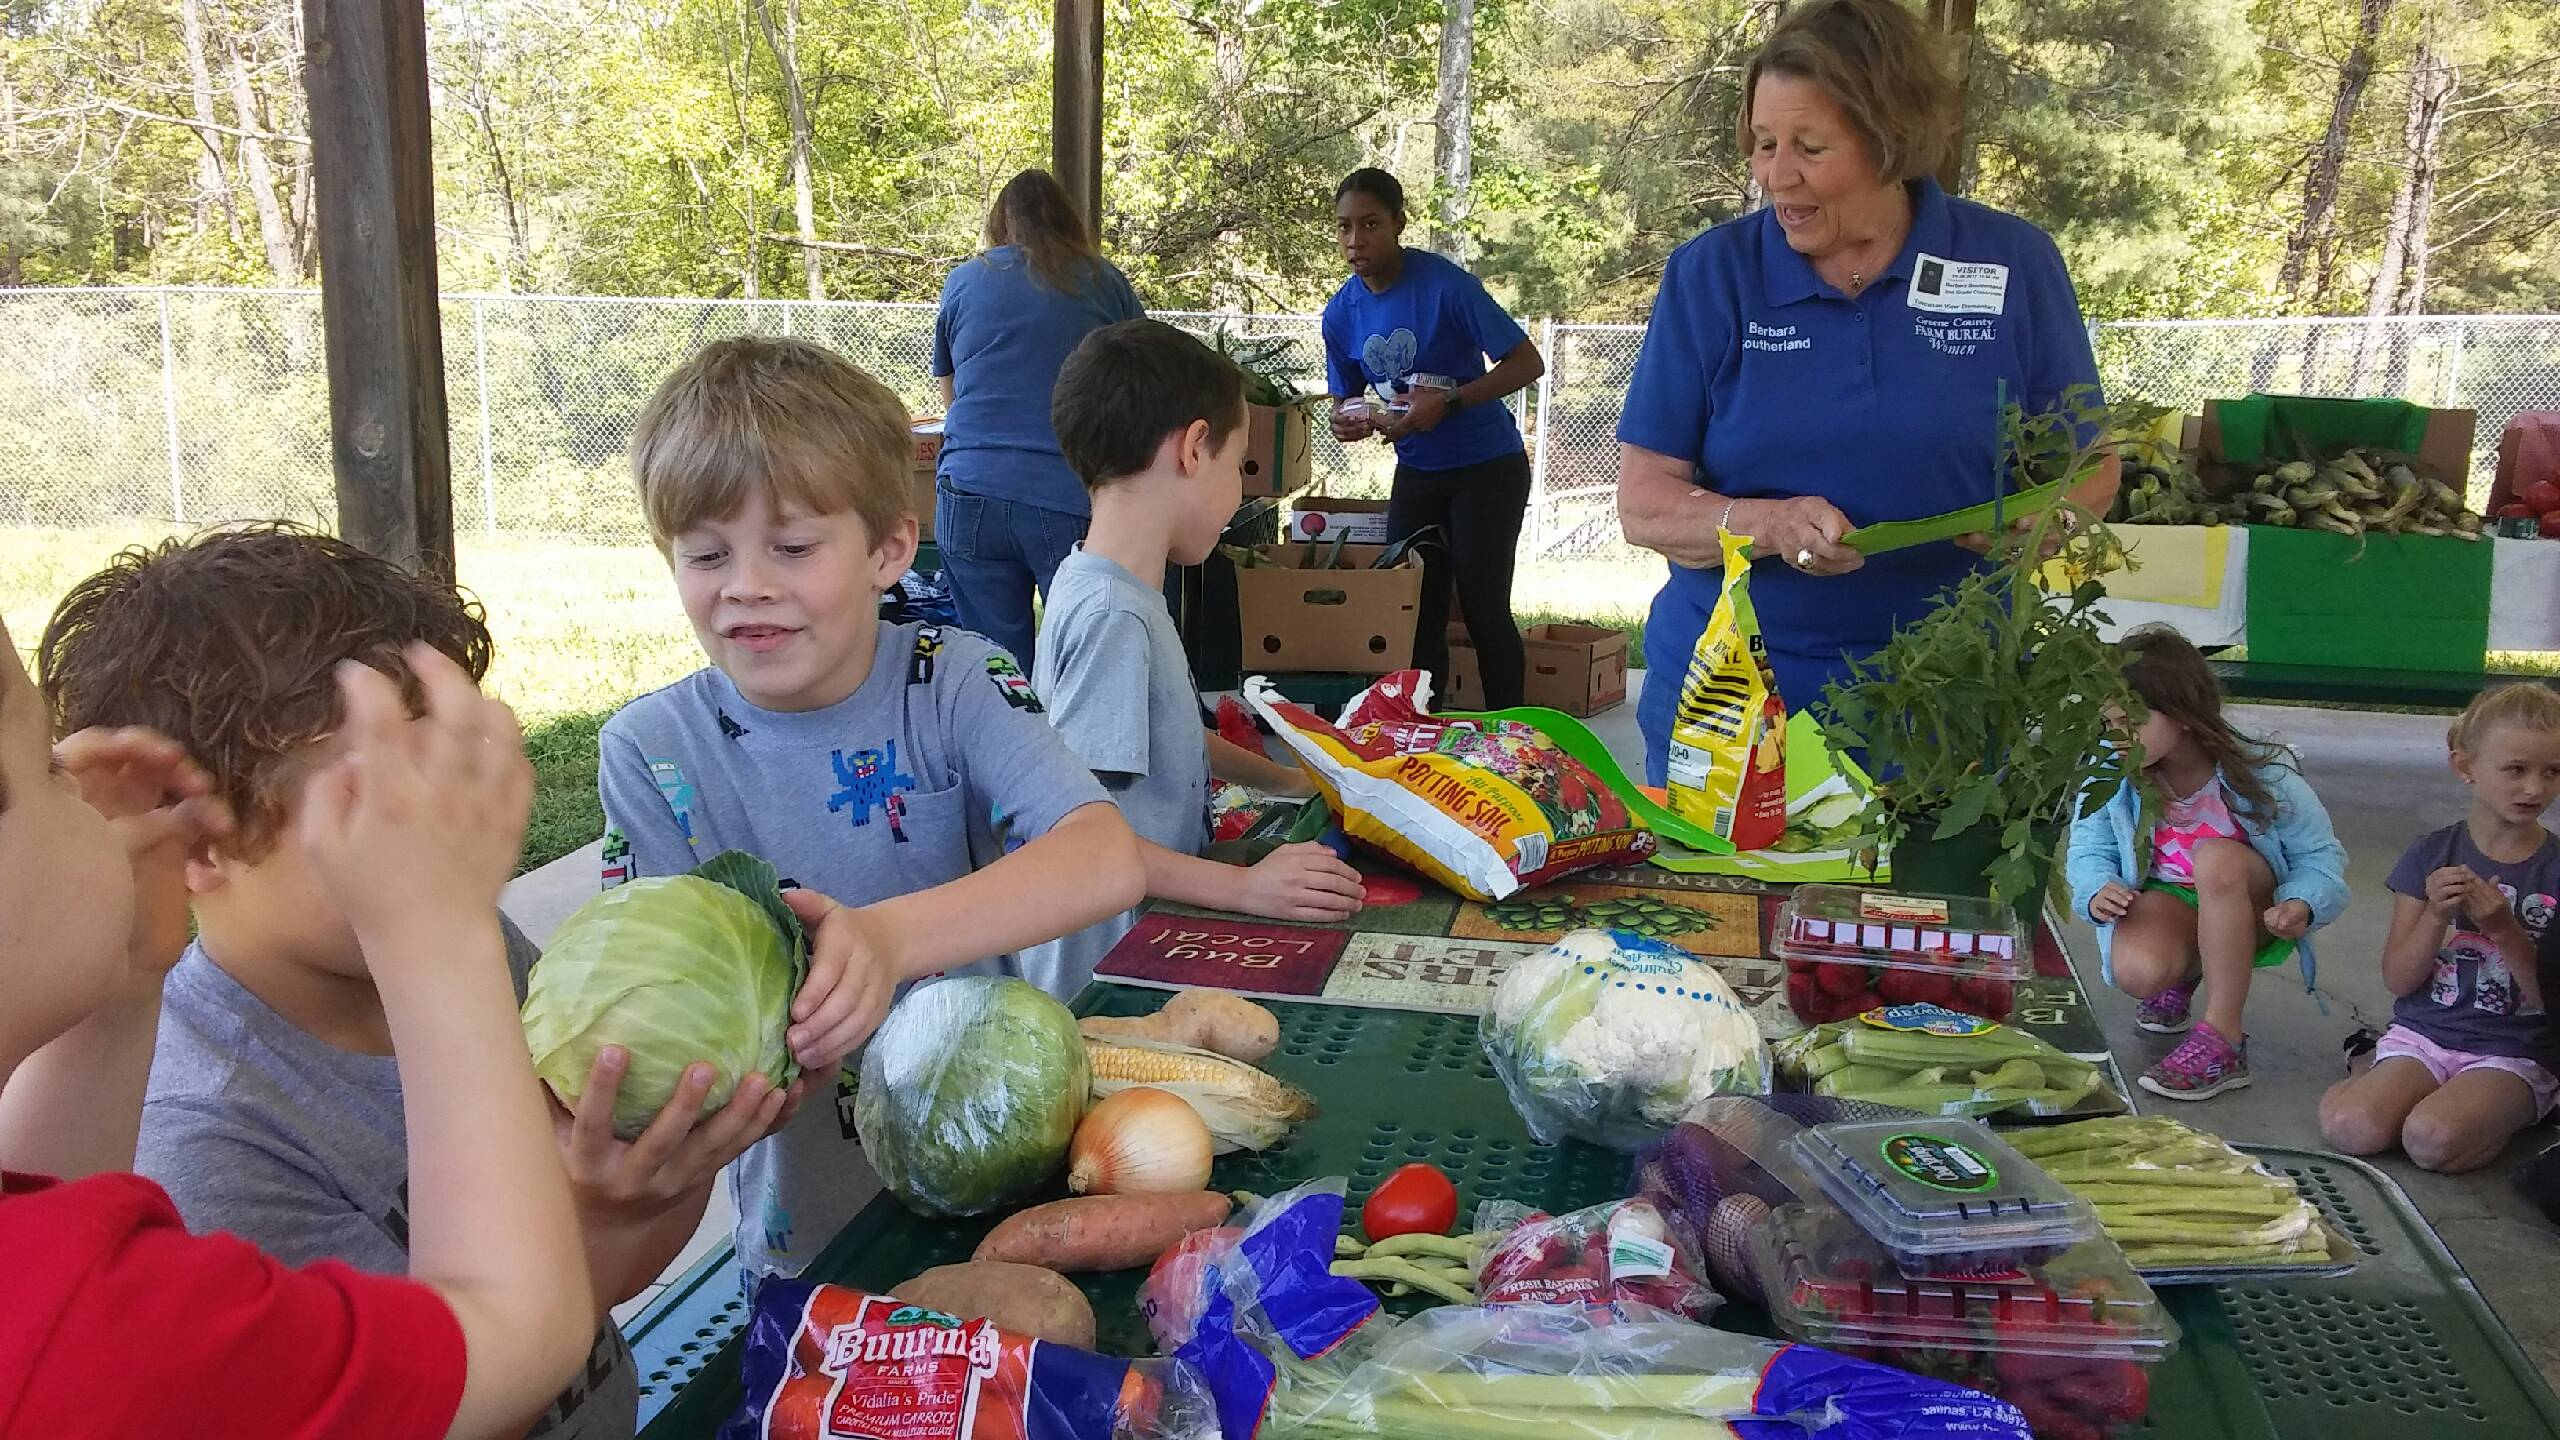 Childrens' Farmer Market